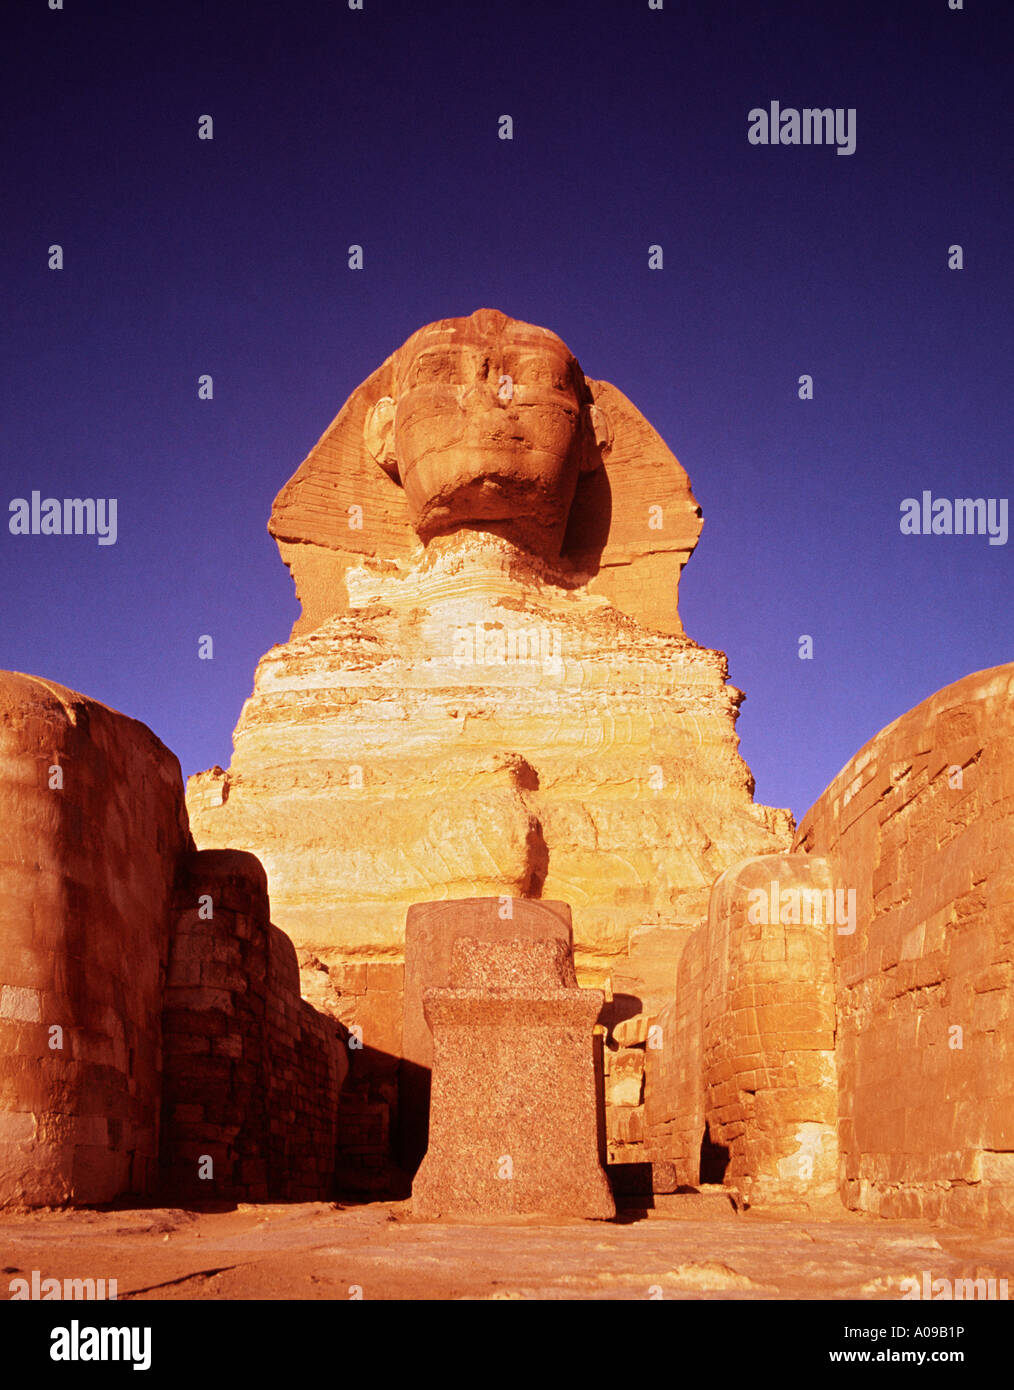 The Sphinx at sunrise Giza, Cairo, Egypt, North Africa. Dramatic front view - Stock Image